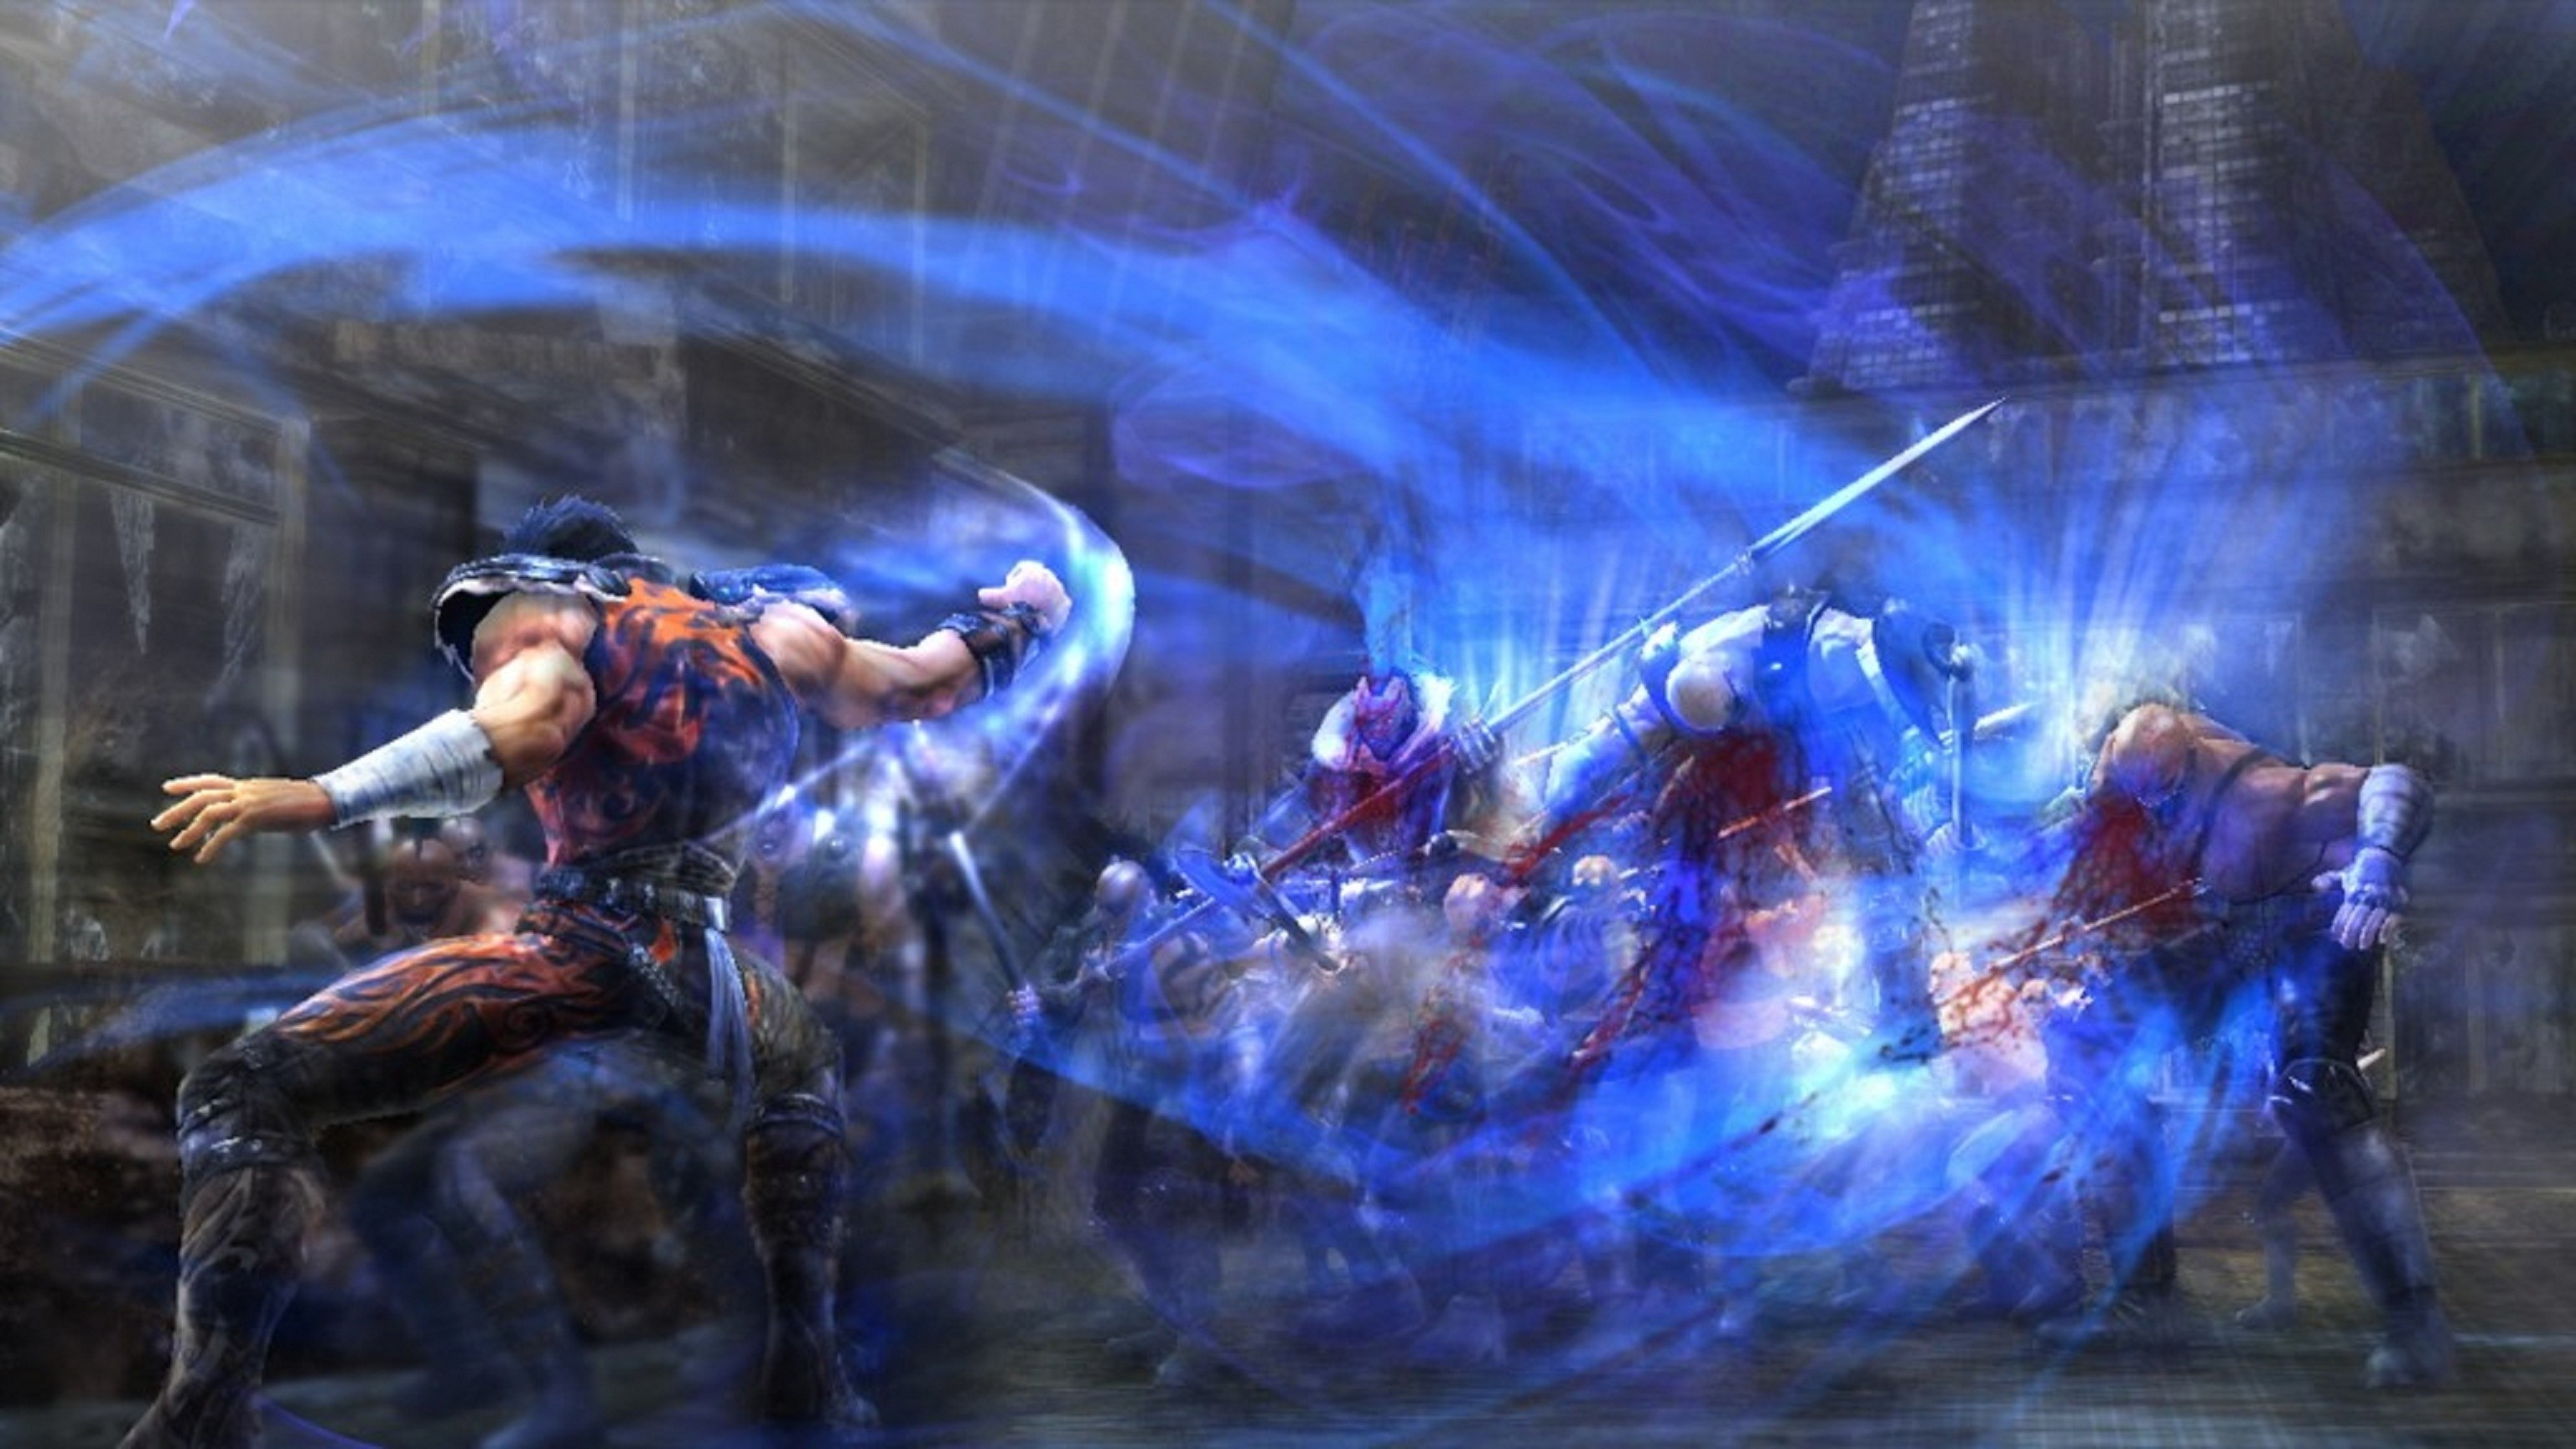 Keys: fist of the north star, wallpaper, wallpapers, anime